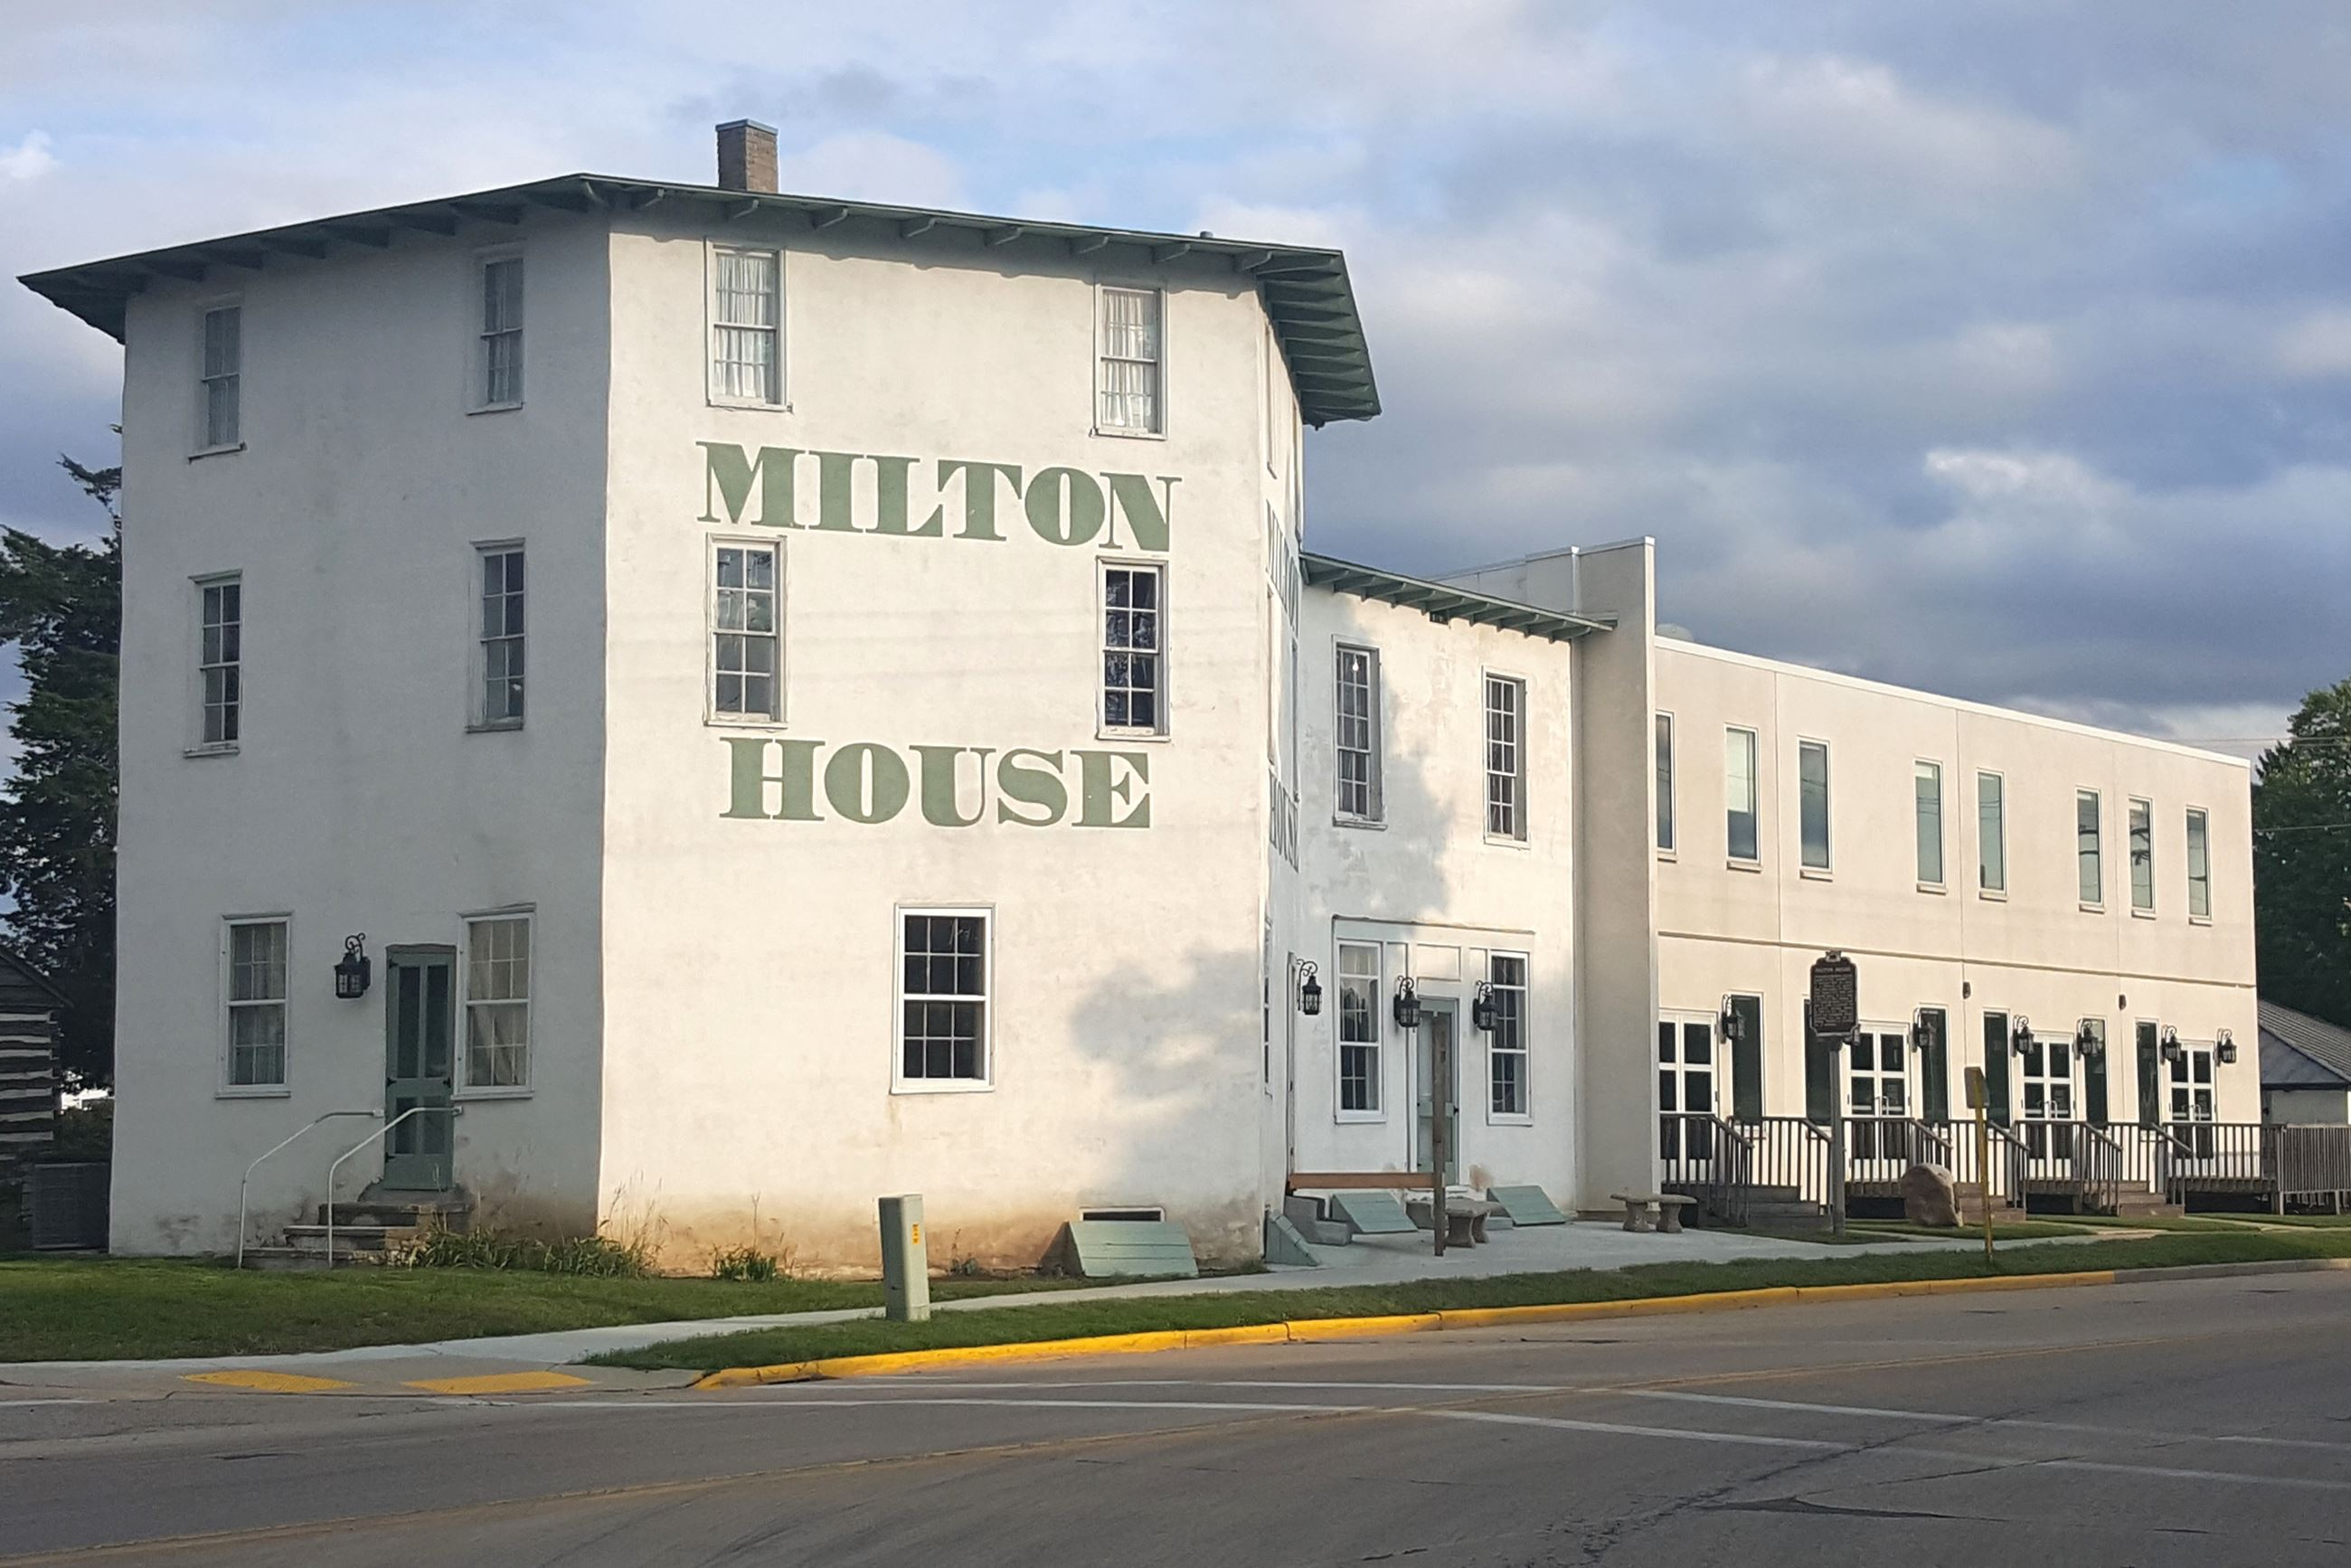 Milton House - Photo Credit Inga Cushman